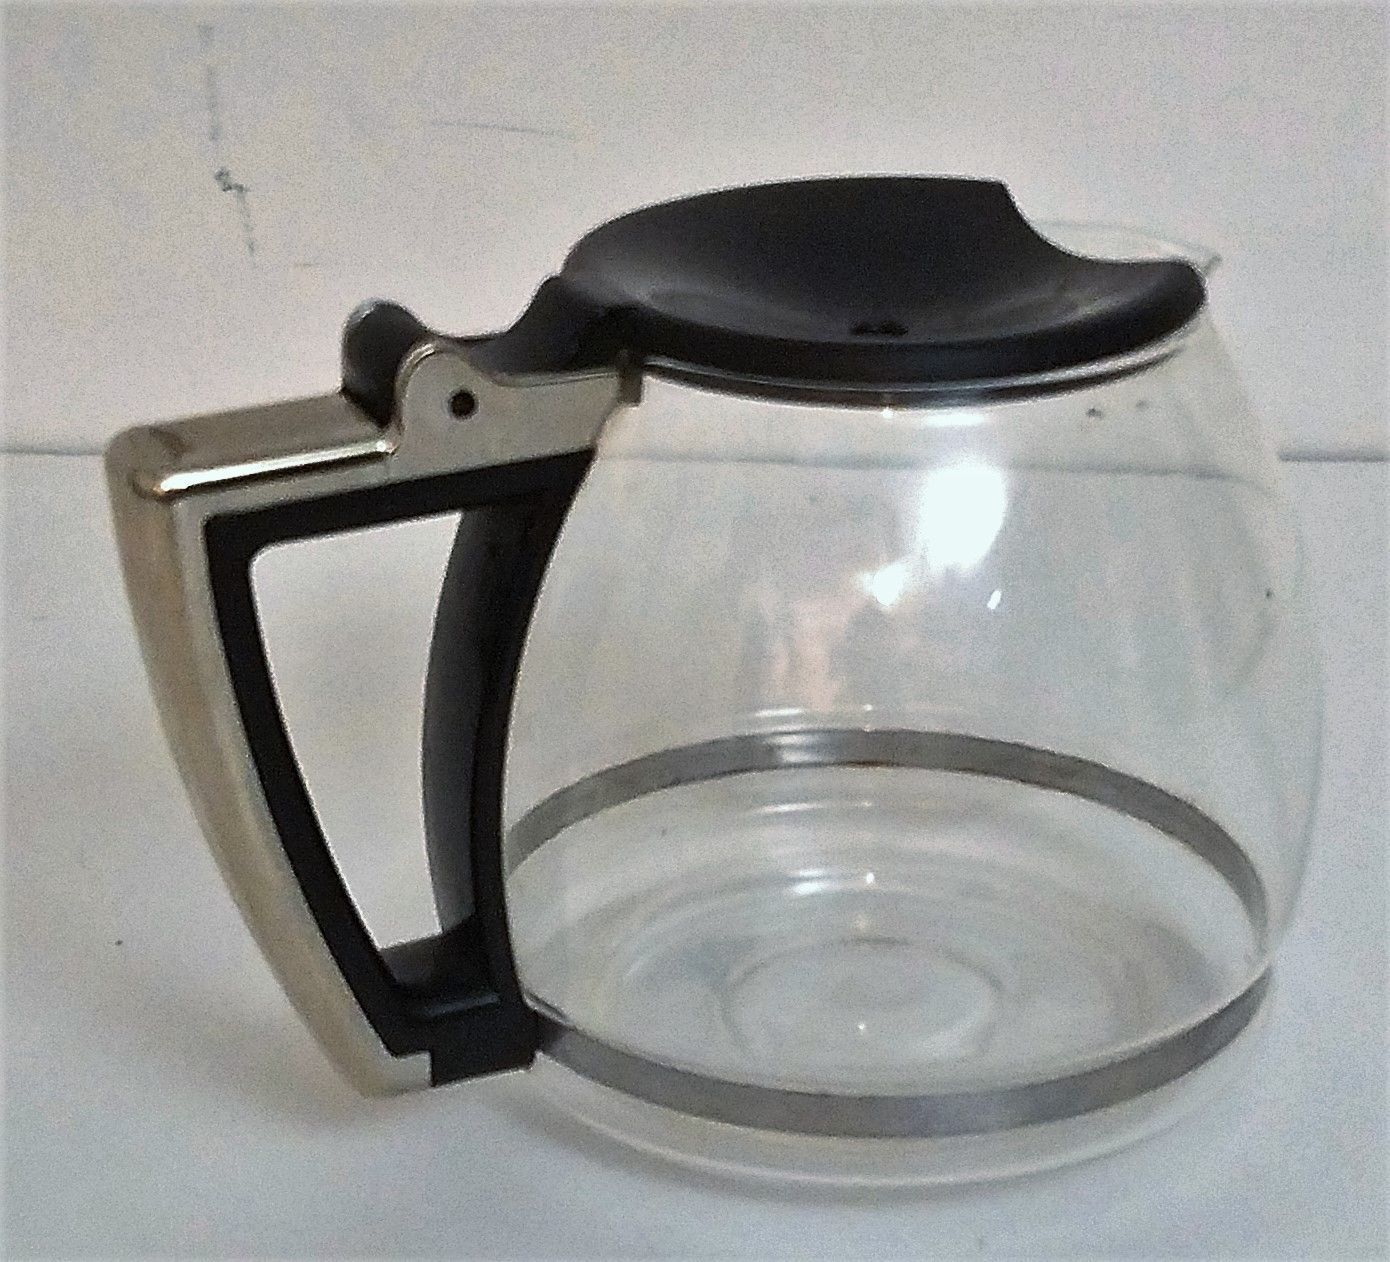 Delonghi Coffee Maker Carafe Replacement : DeLonghi DCF212T Coffee Carafe 12 Cup Replacement Glass Decanter Black Handle - Replacement ...